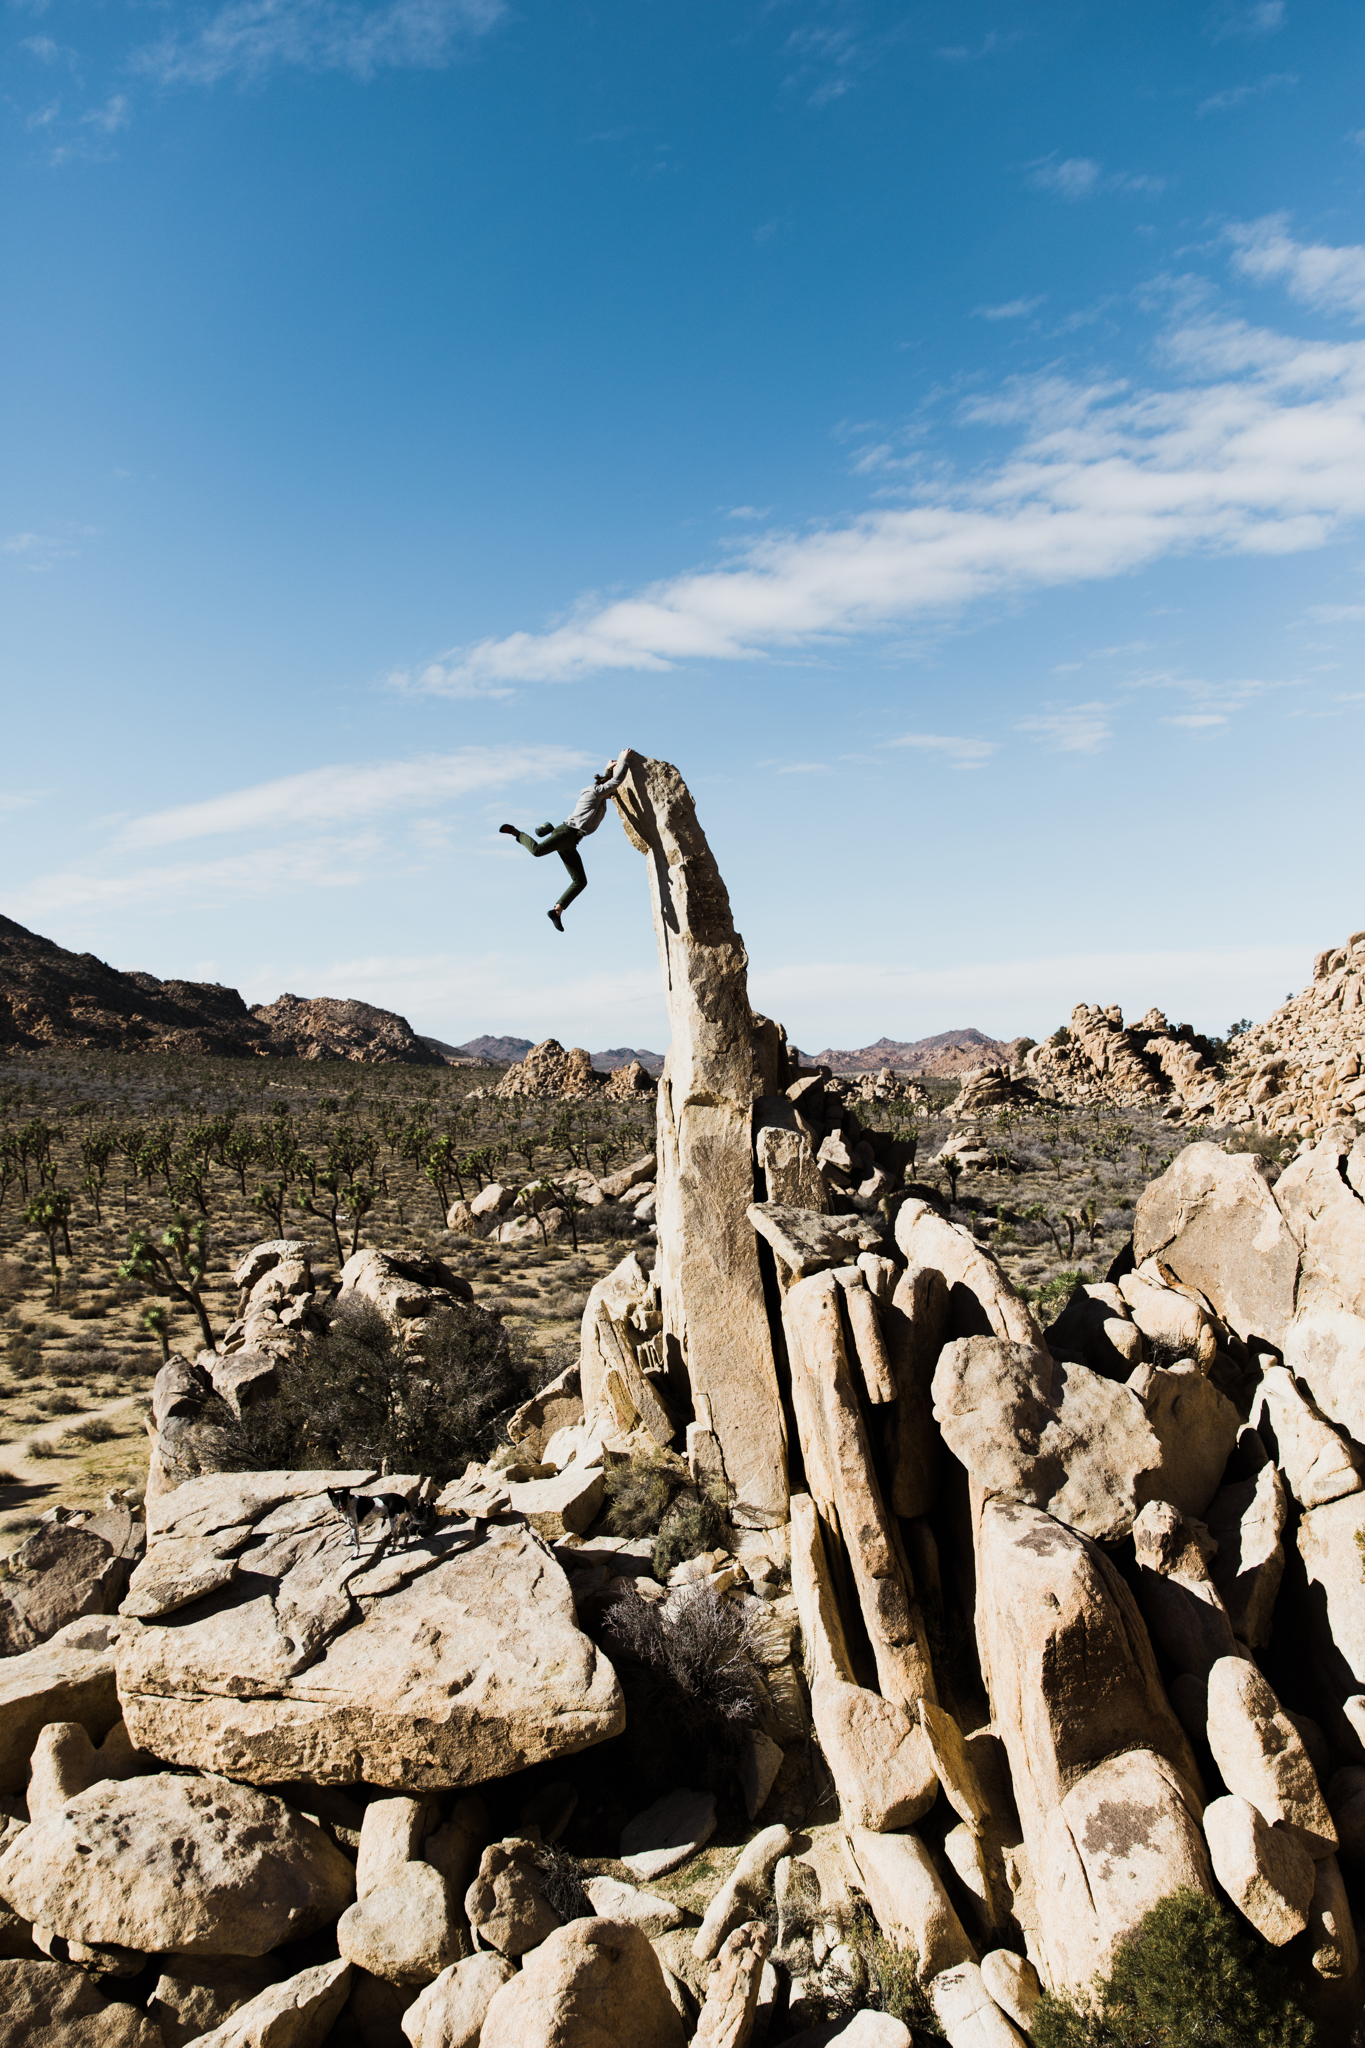 climbing in Joshua tree national park | utah and california adventure elopement photographers | the hearnes adventure photography | www.thehearnes.com